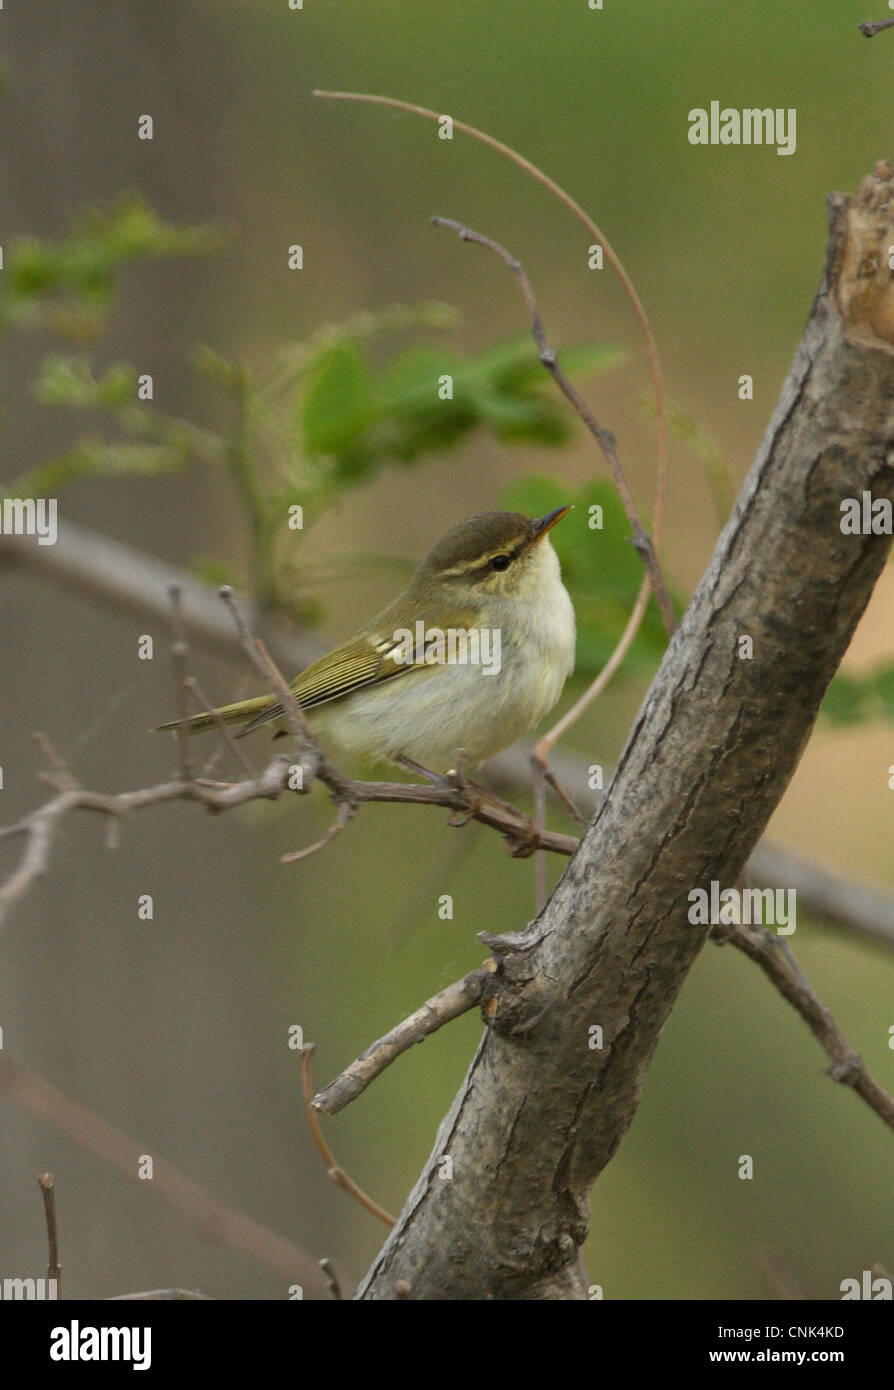 Two-barred Greenish Warbler (Phylloscopus plumbeitarsus) adult, perched on twig, Hebei, China, may Stock Photo